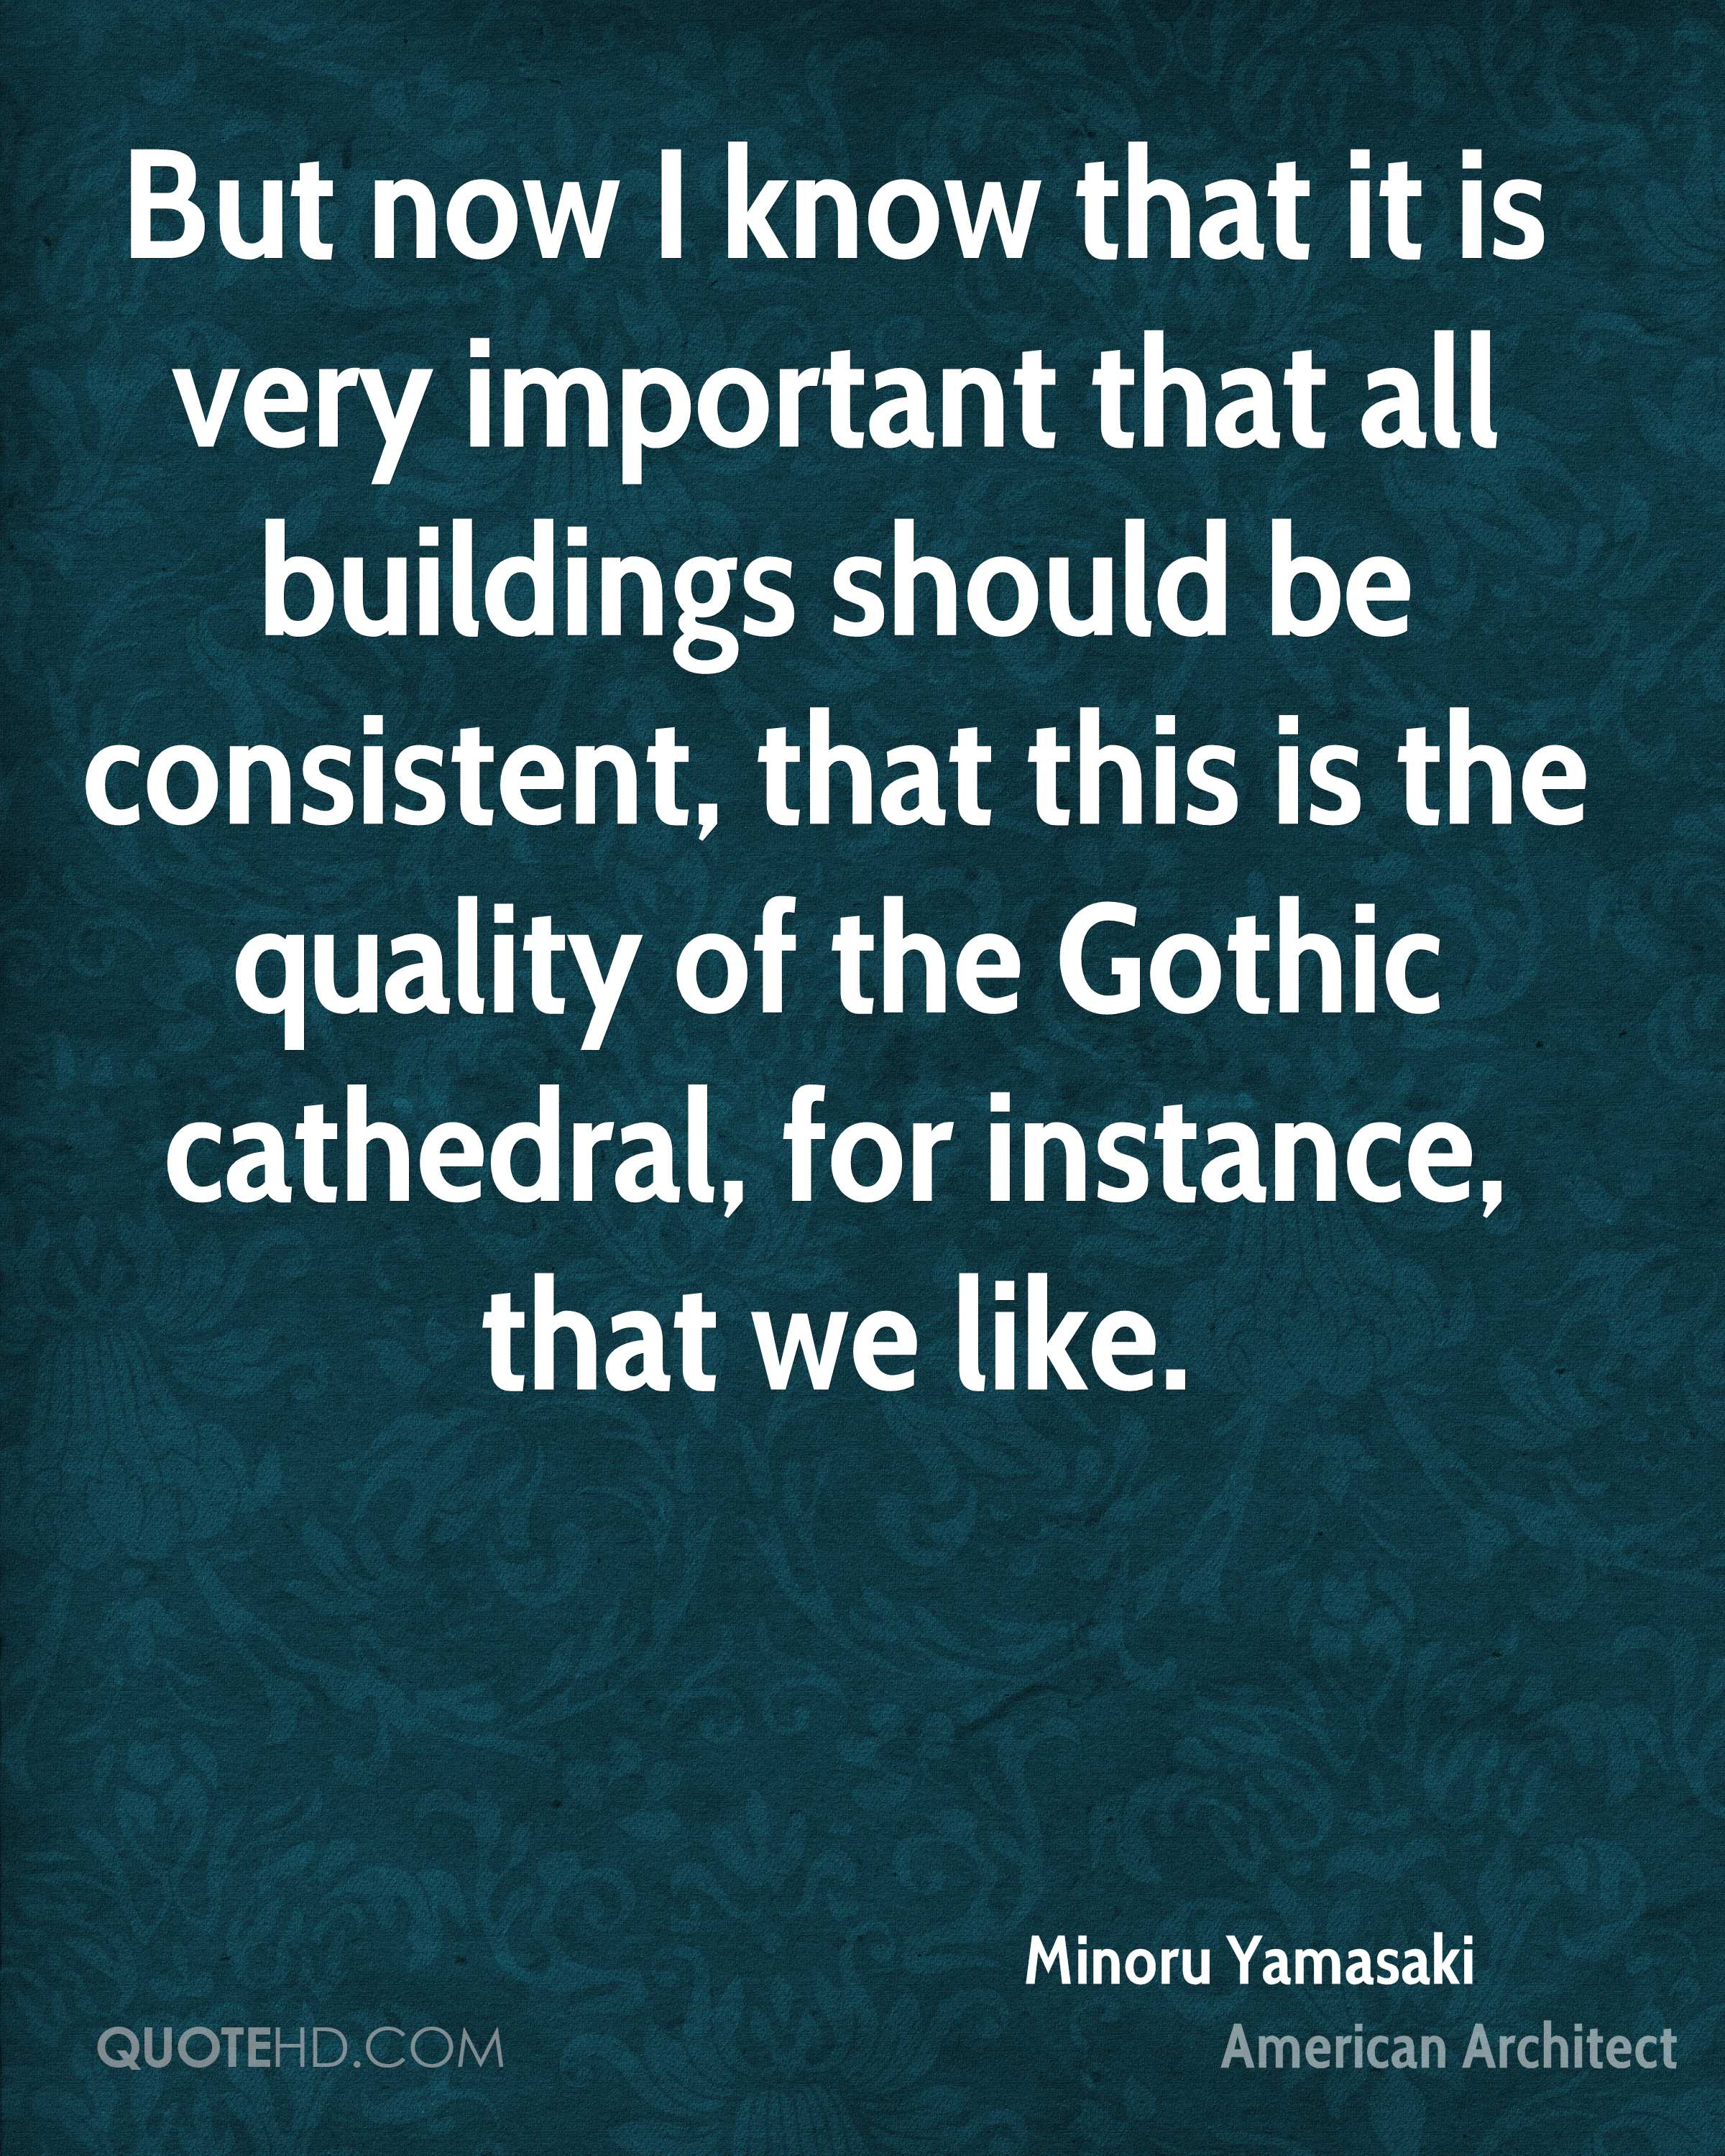 But now I know that it is very important that all buildings should be consistent, that this is the quality of the Gothic cathedral, for instance, that we like.